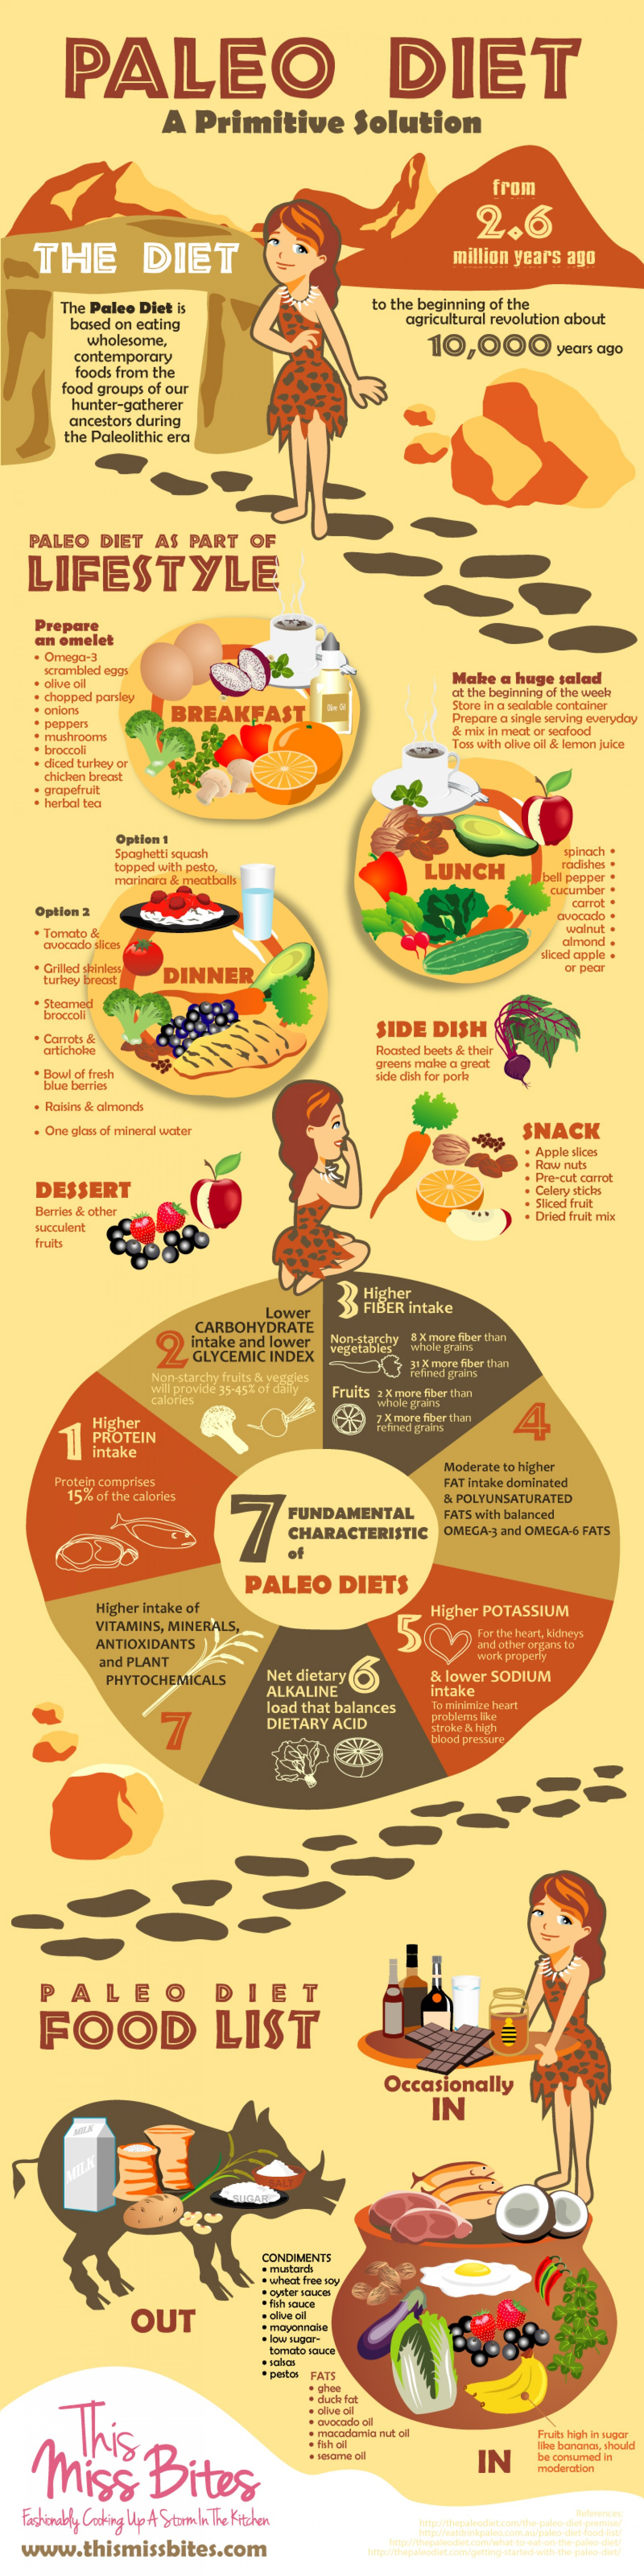 Paleo Diet For Beginners  Paleolithic Diet Paleo Diet Plan For Beginners [Infographic]